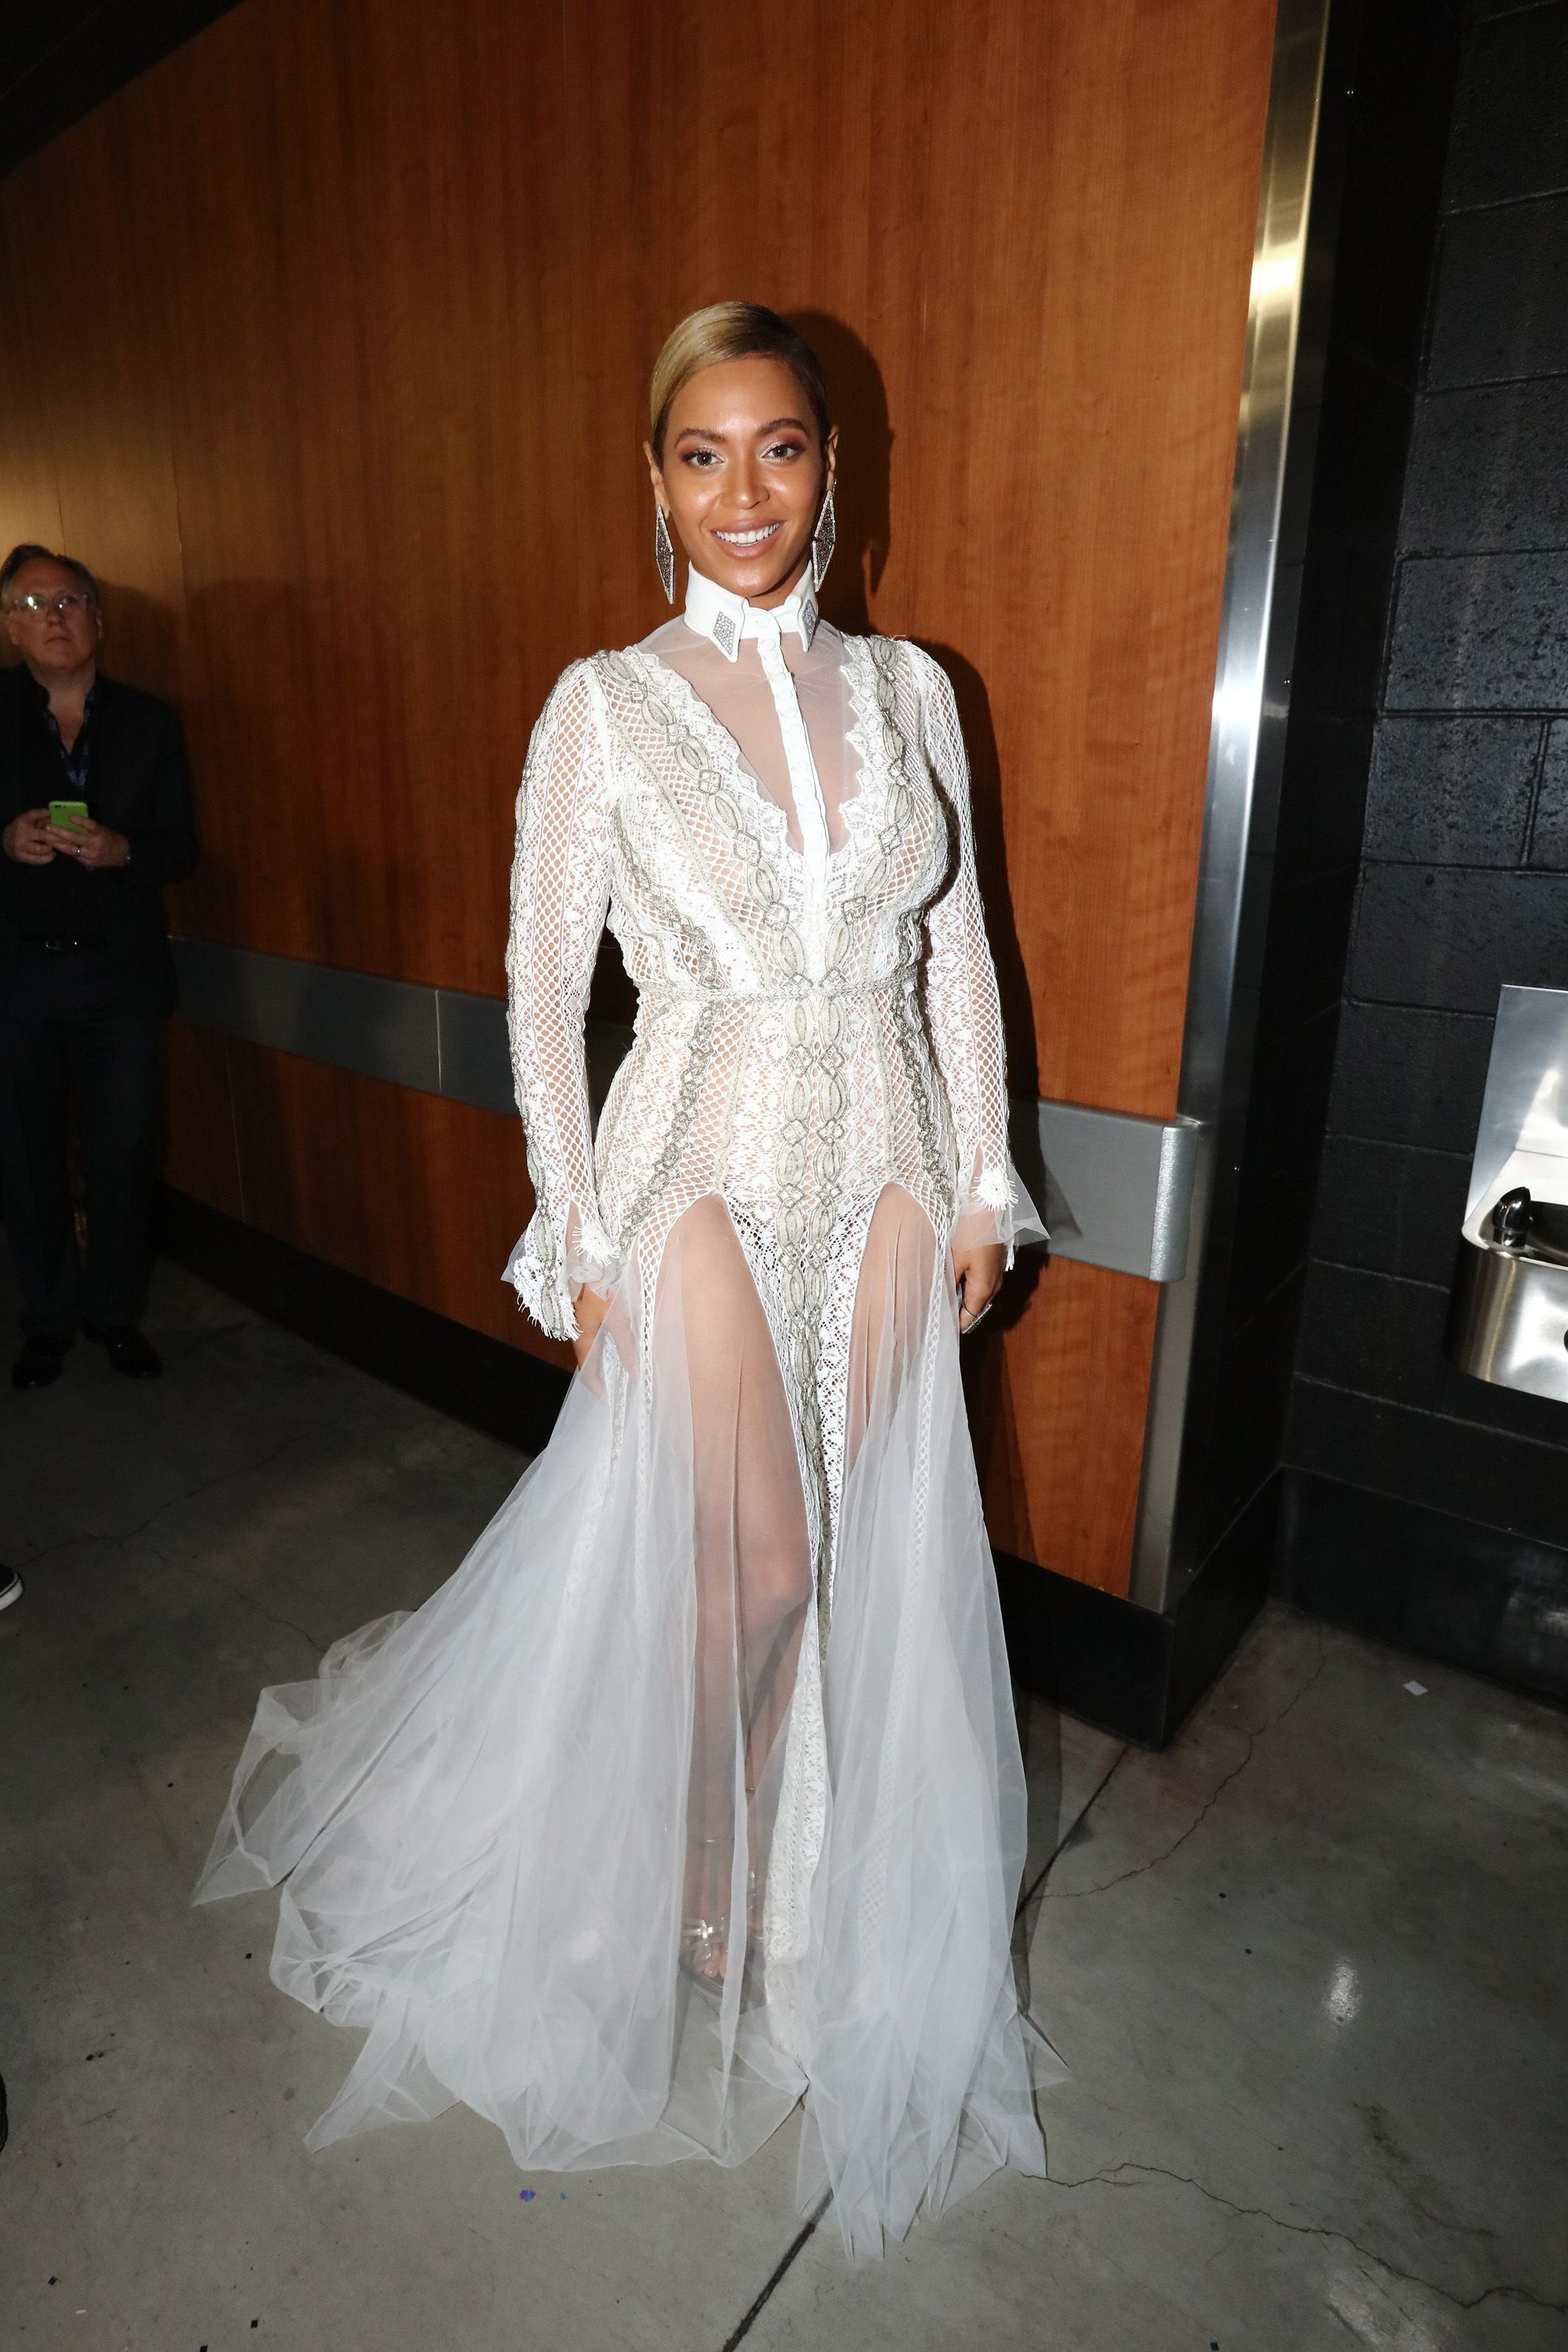 Beyonce Wears A Ryan And Walter Bridal Gown In 2019 Holiday Photo